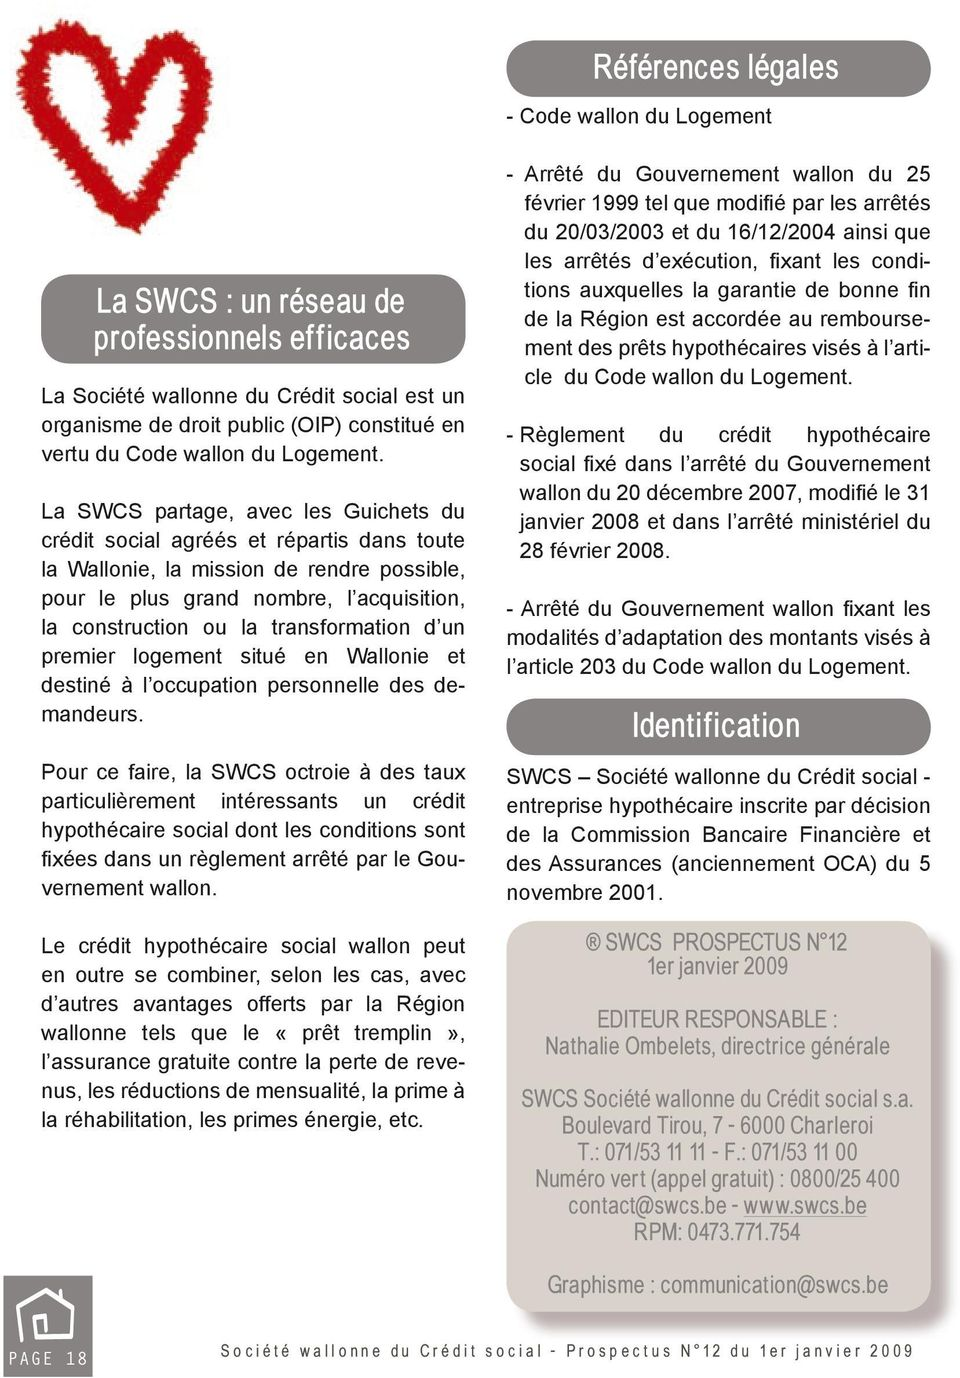 La SWCS partage, avec les Guichets du crédit social agréés et répartis dans toute la Wallonie, la mission de rendre possible, pour le plus grand nombre, l acquisition, la construction ou la